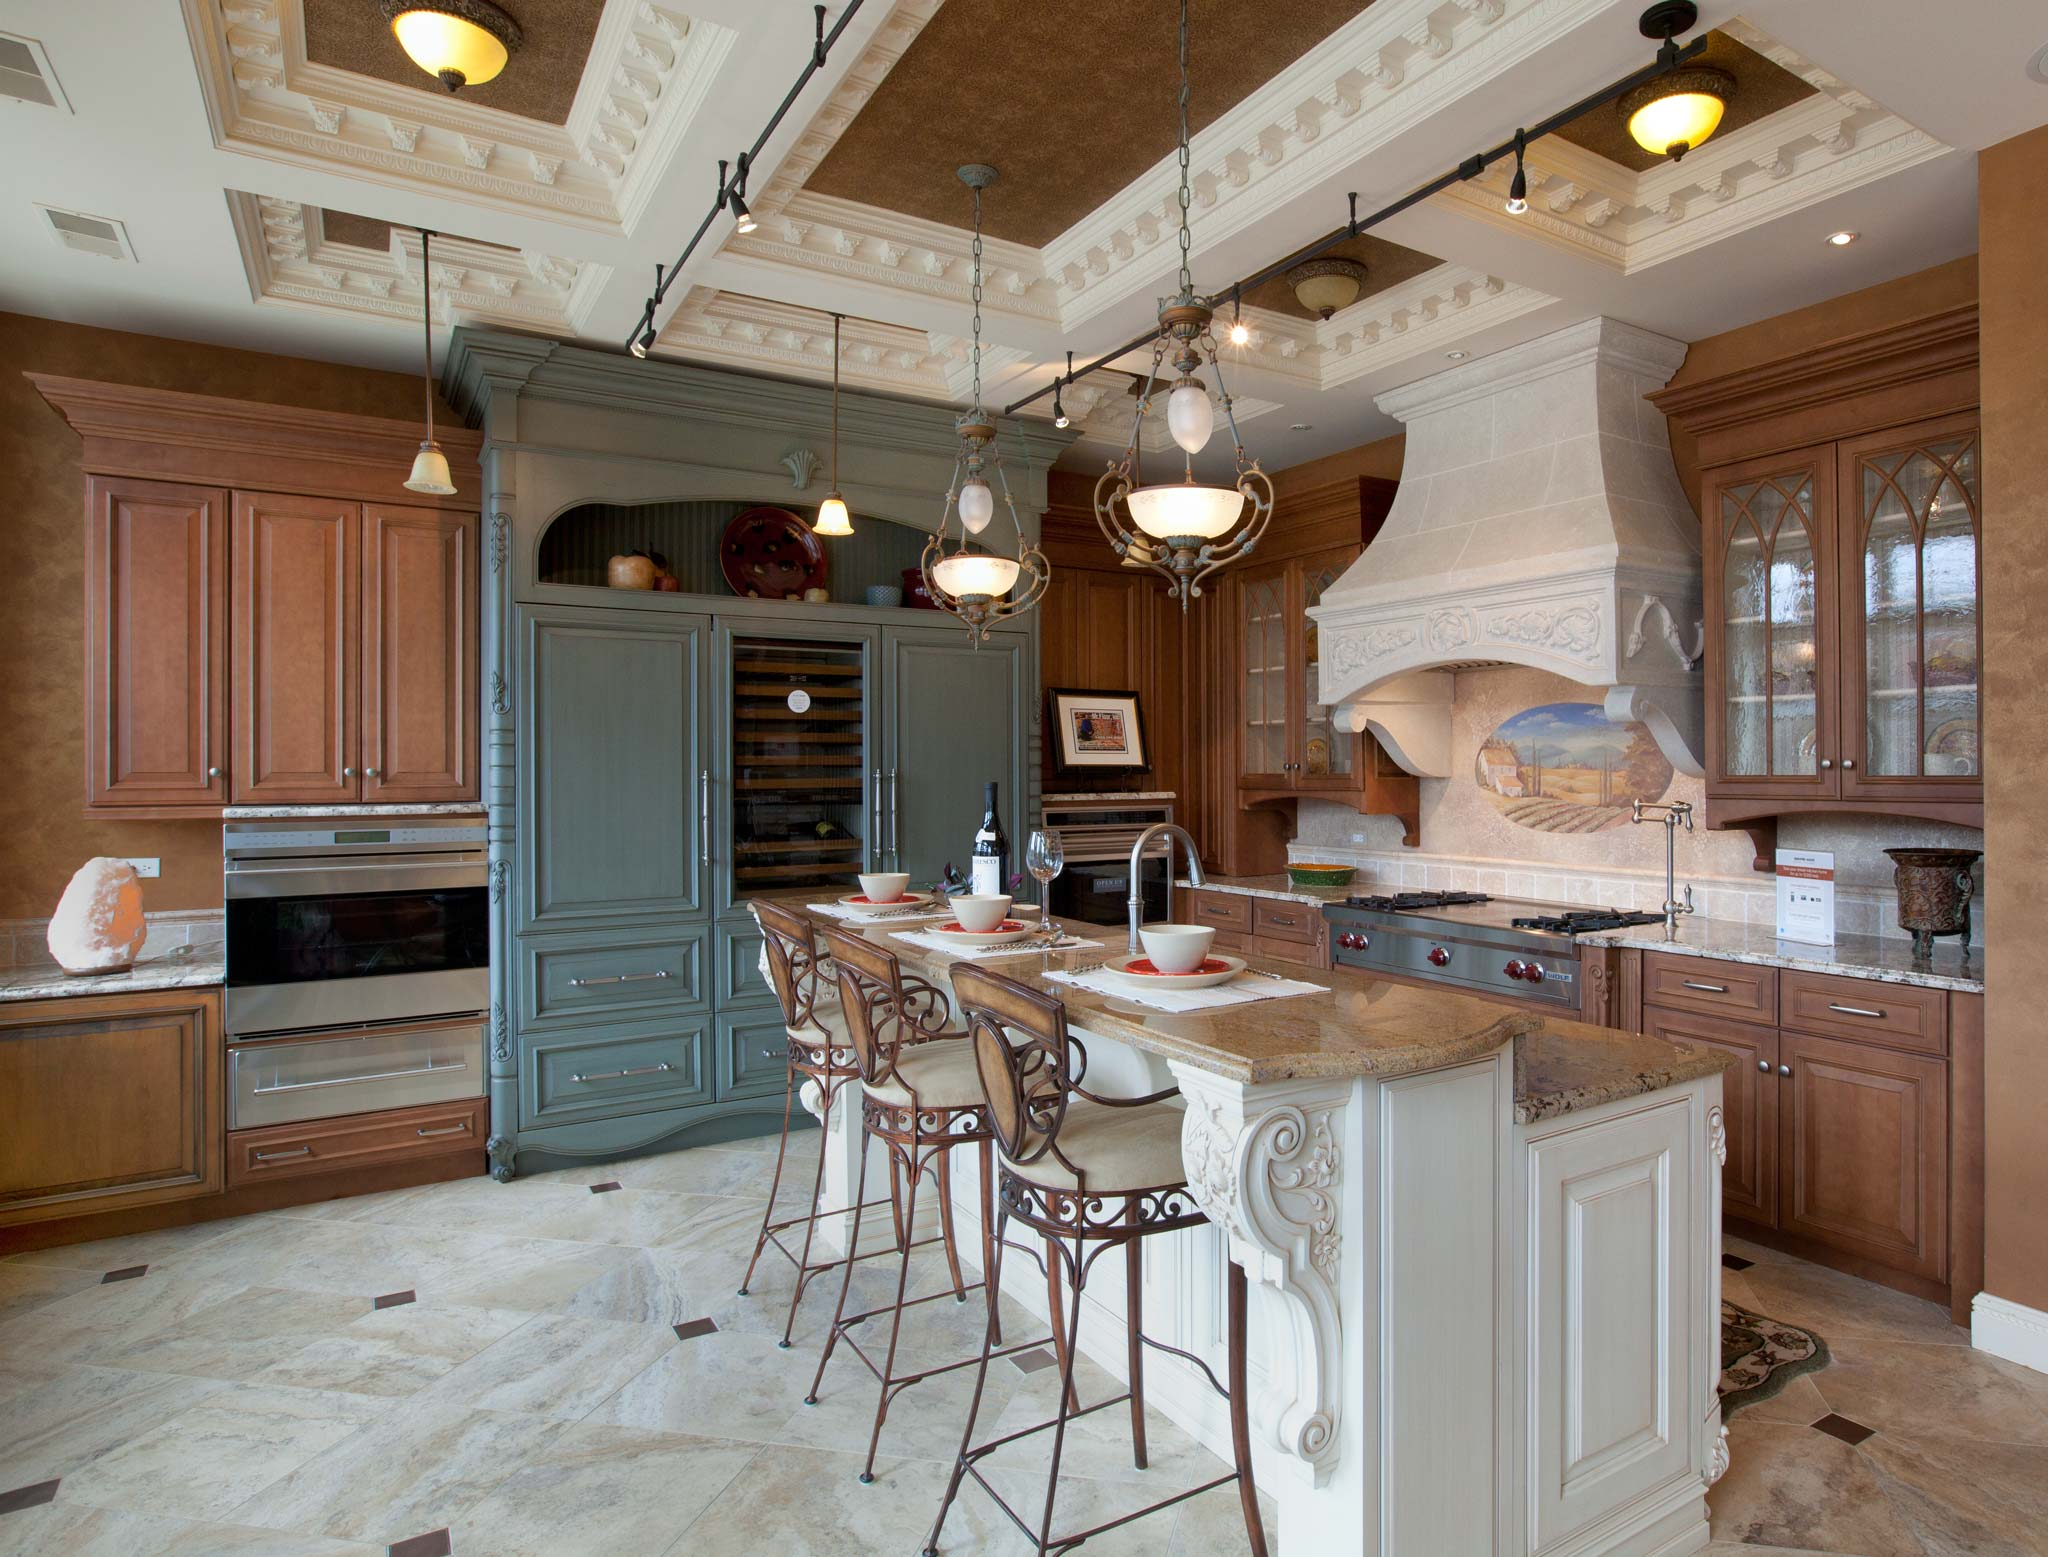 Mr floor chicago showroom traditional kitchen mixed tones 6059 v2 2048w